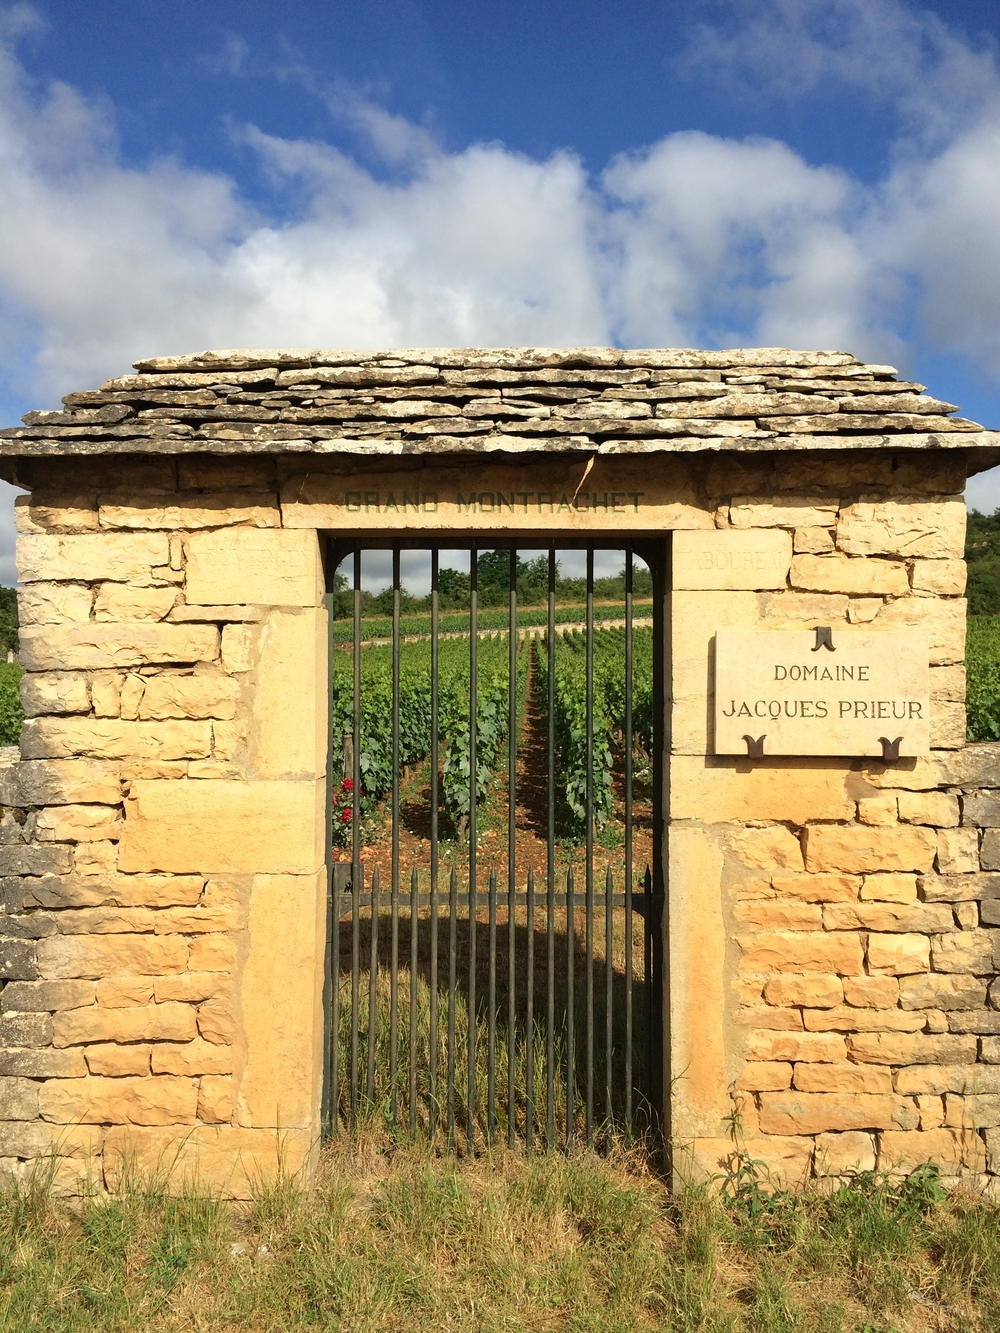 A short walk from La Maison d' Olivier Leflaive takes you through beautiful vineyards including legendary Montrachet